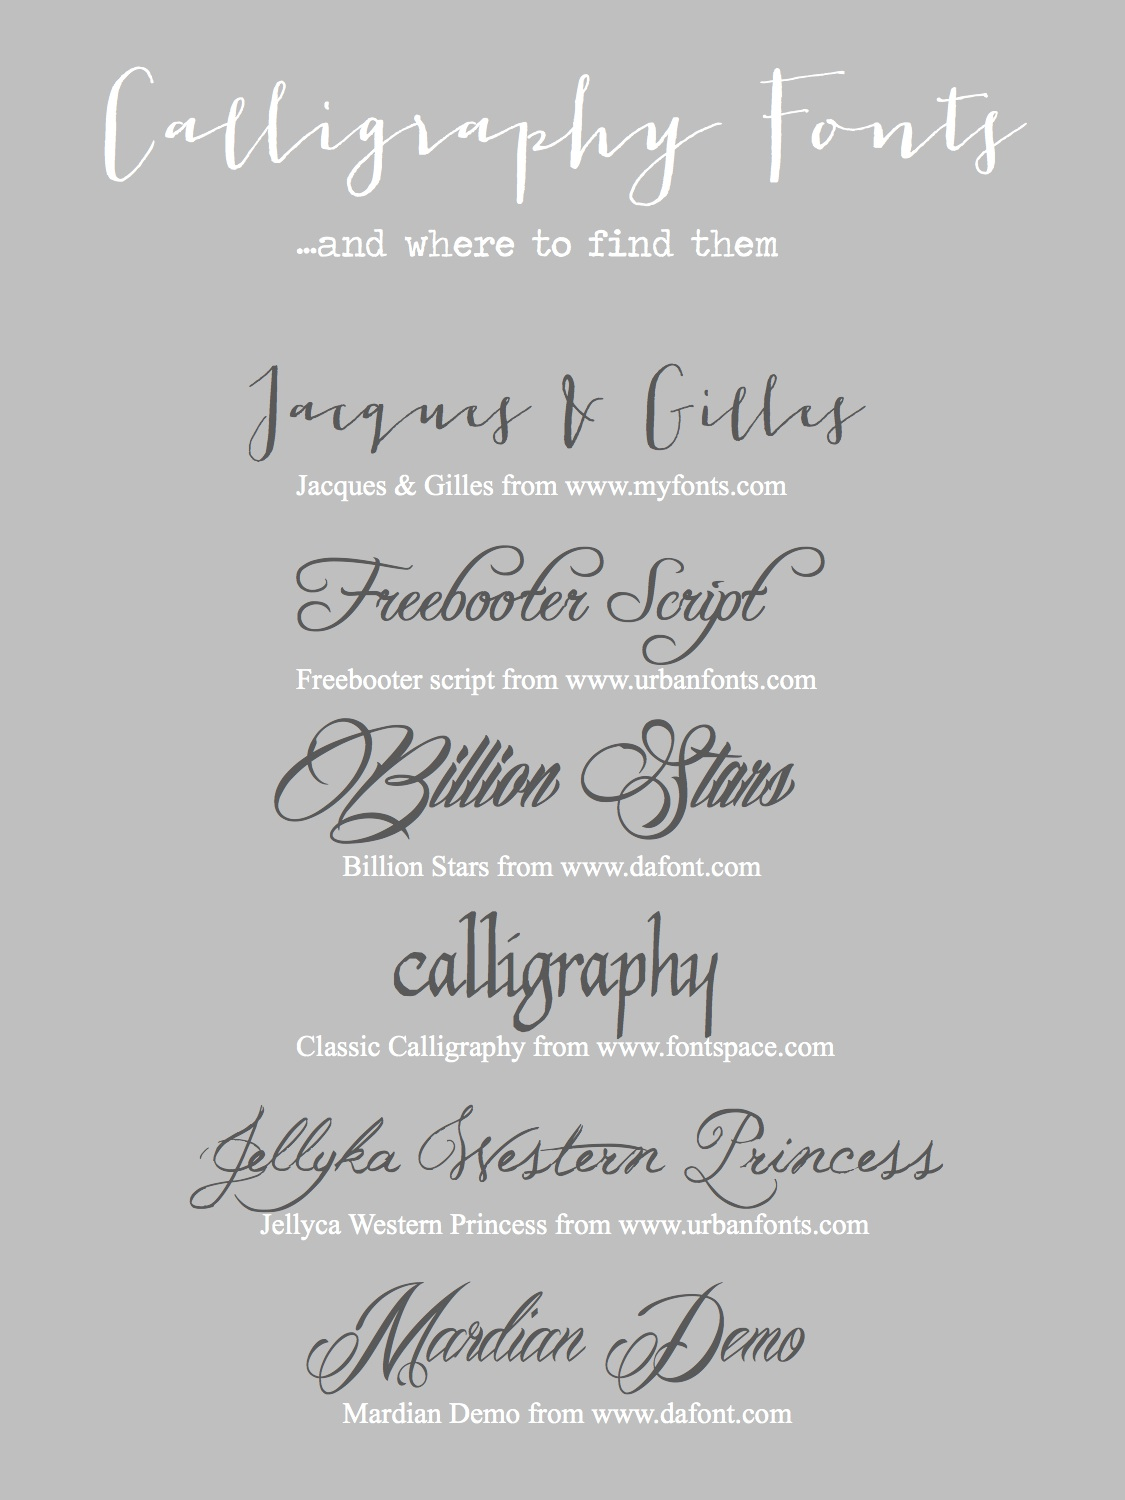 The cheats guide to calligraphy or how to acquire Calligraphy text